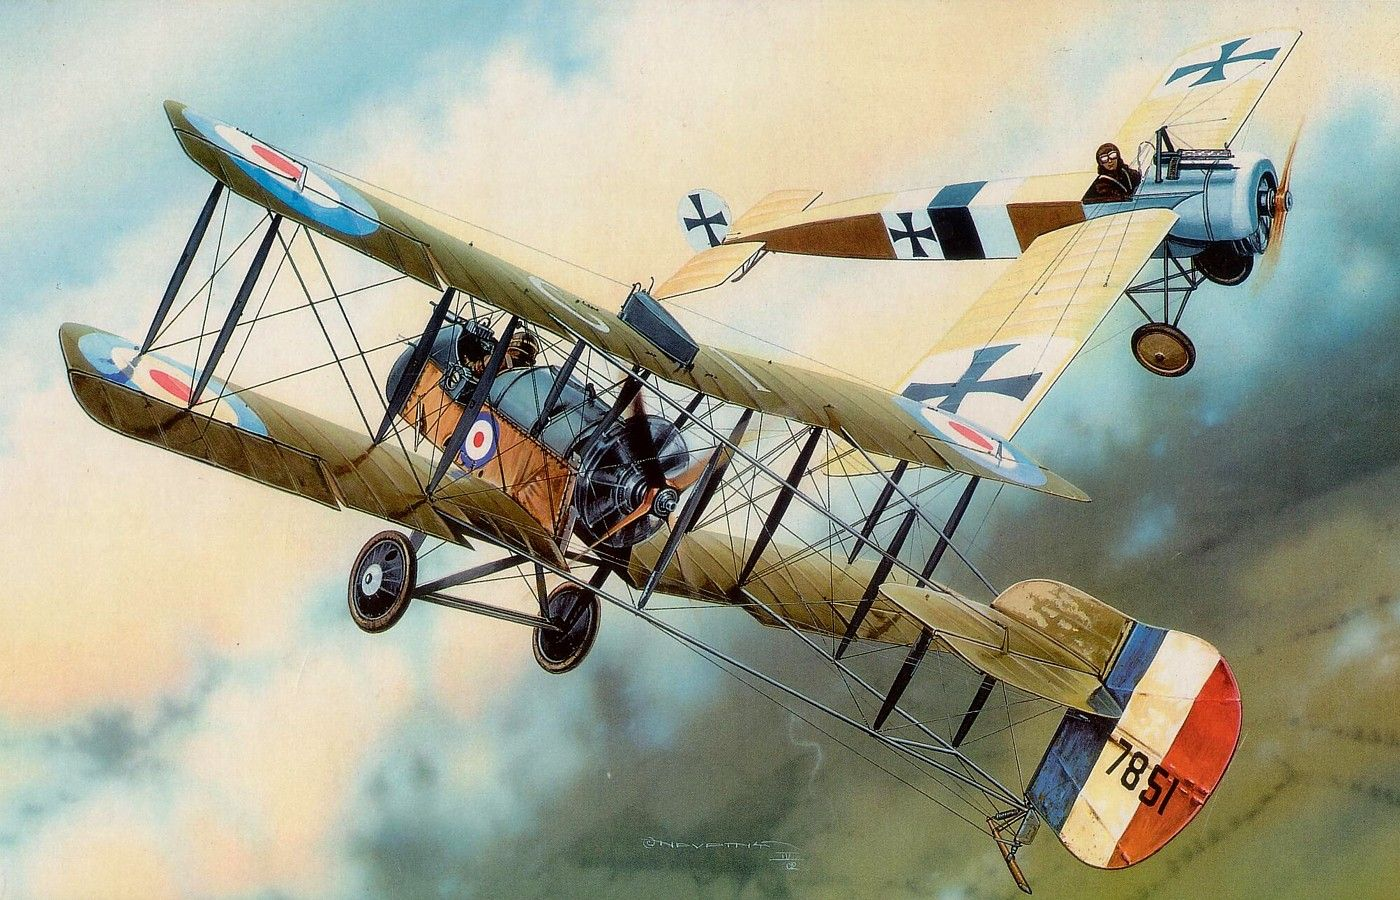 aviation in wwi Visit the post for more 1341 princess anne road virginia beach, va 23457 1 (757) 721-7767 the military aviation museum is a 501 (c) (3) non-profit organization.